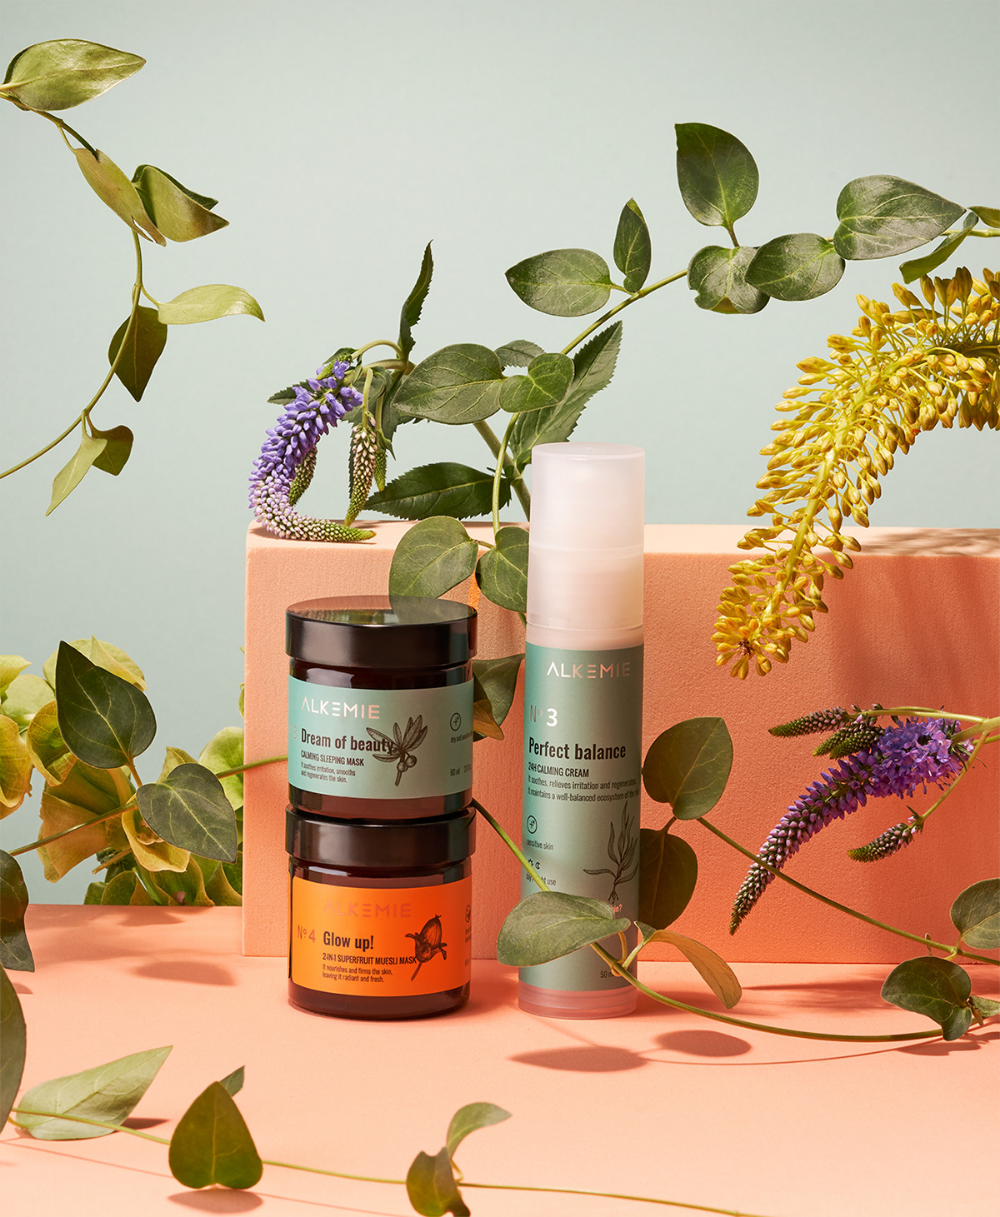 Behance 新项目 Cosmetics photography, Beauty products